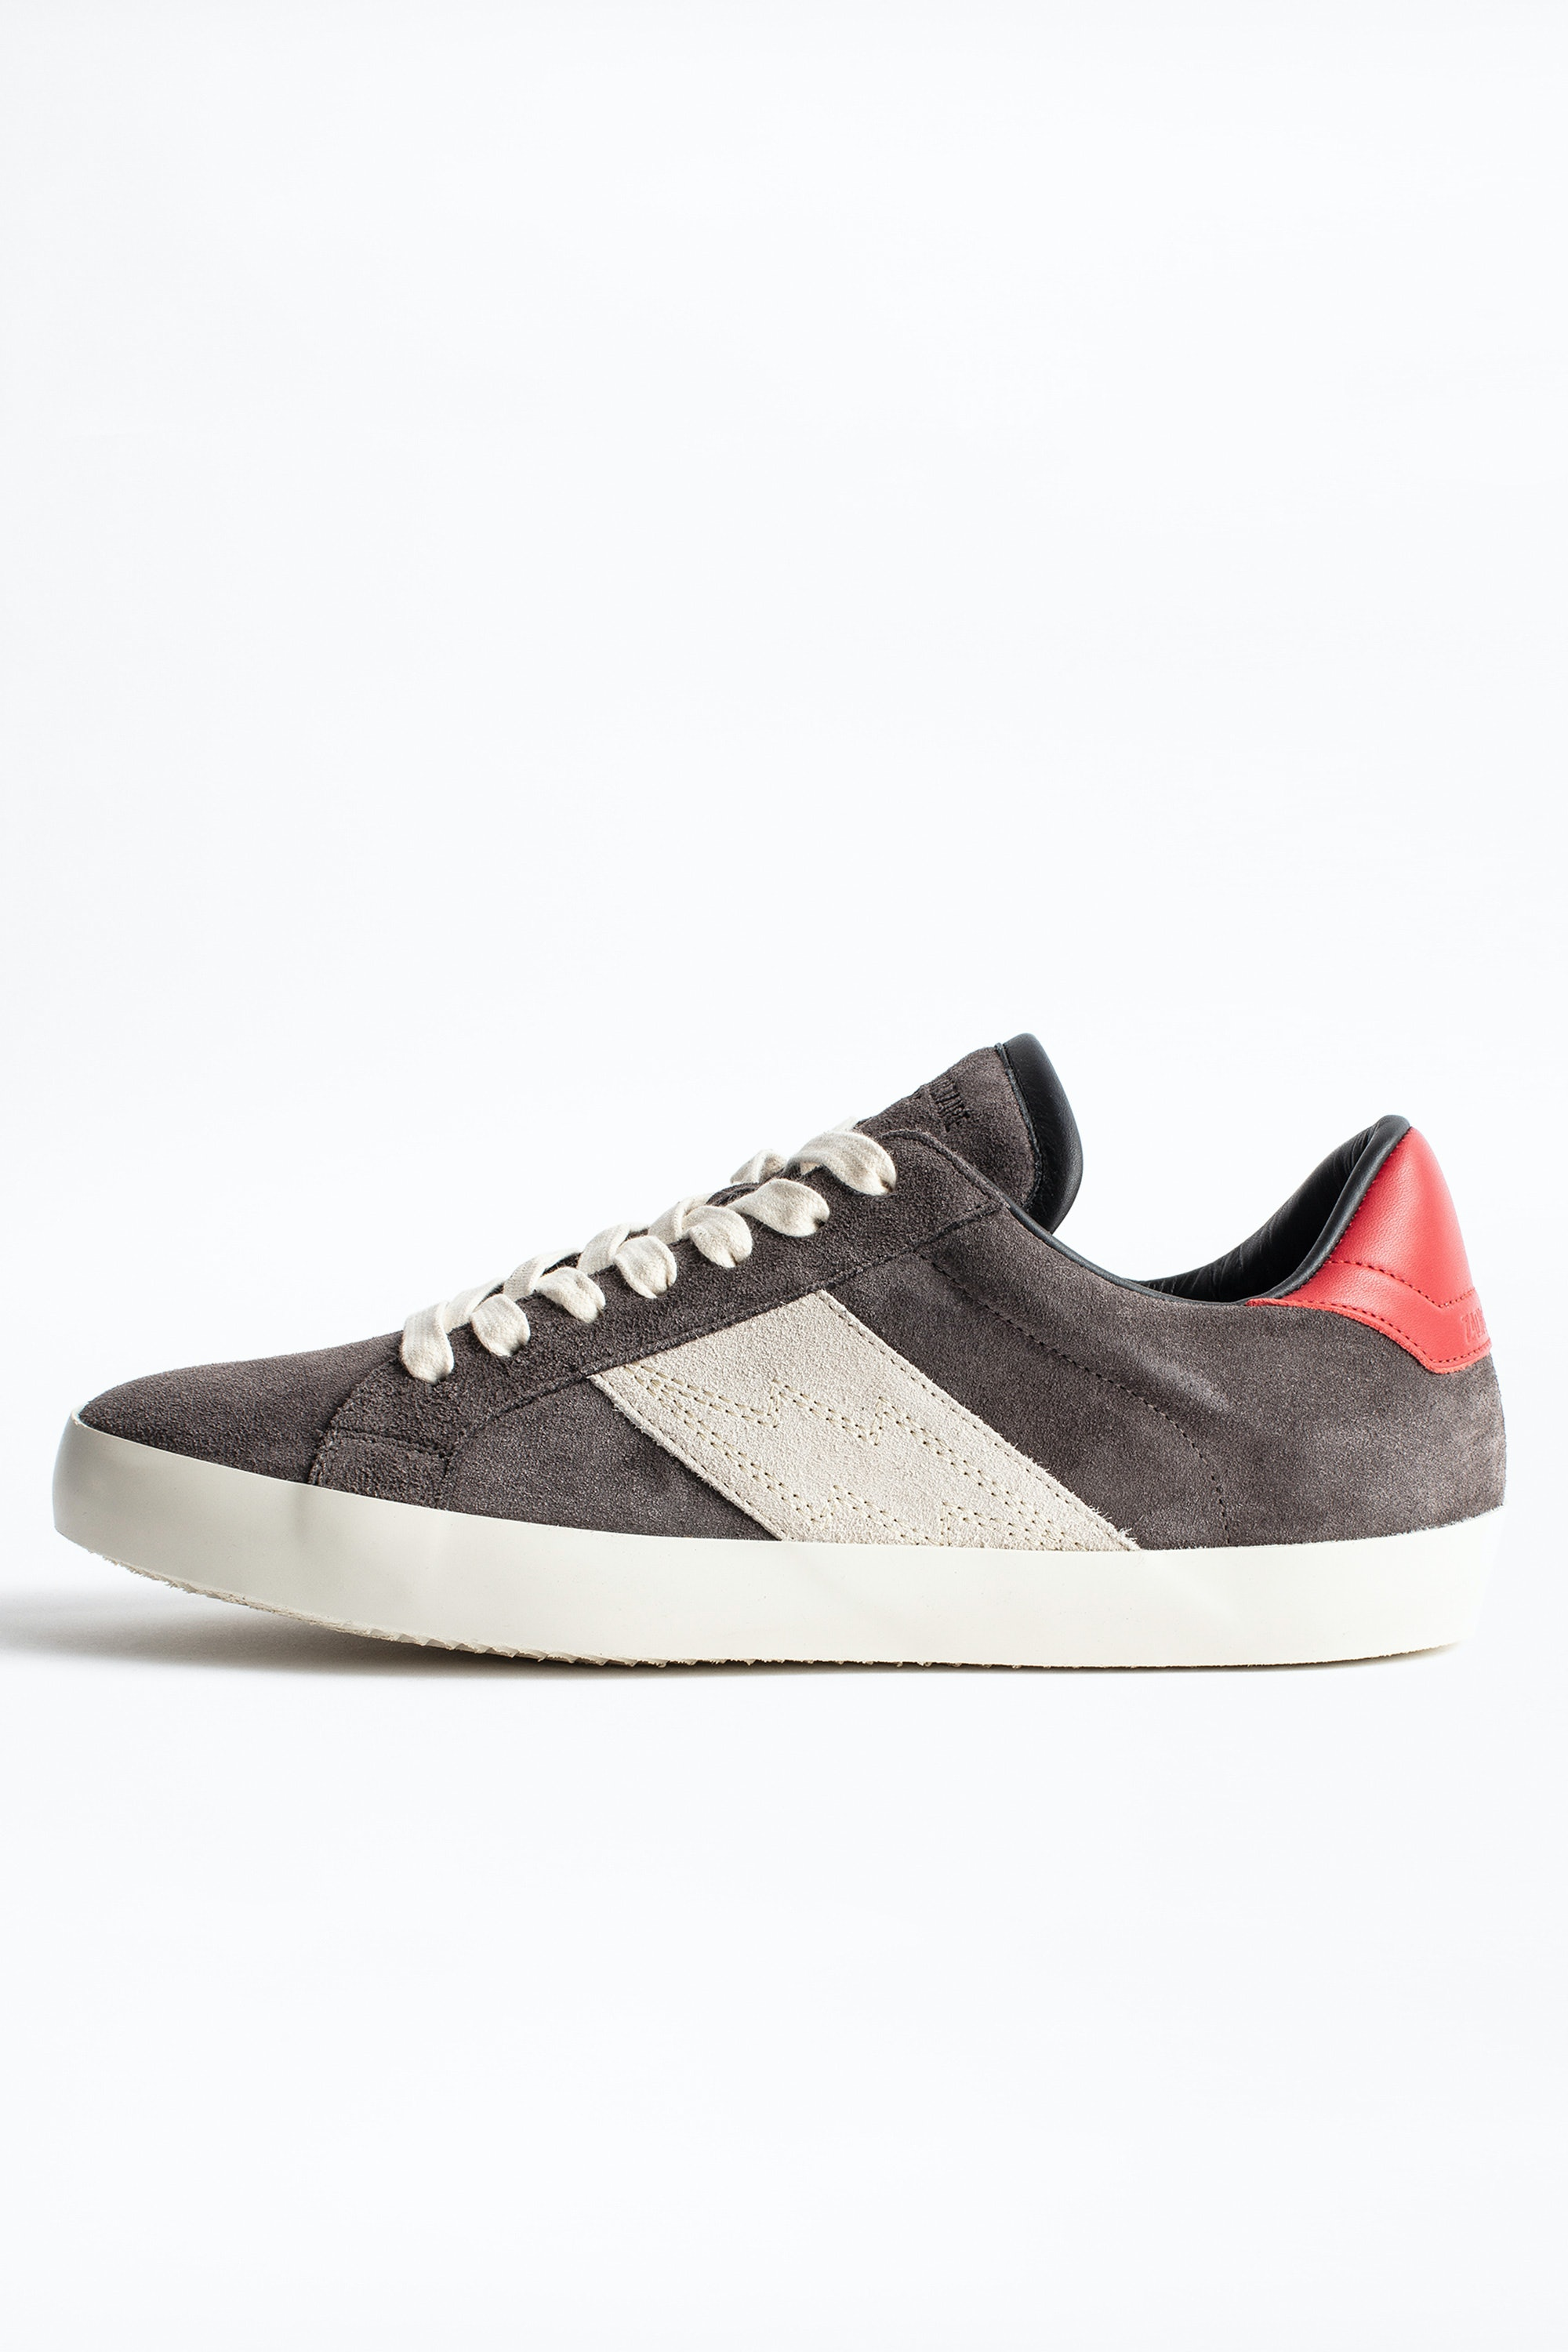 Zadig Patch Suede Men Sneakers